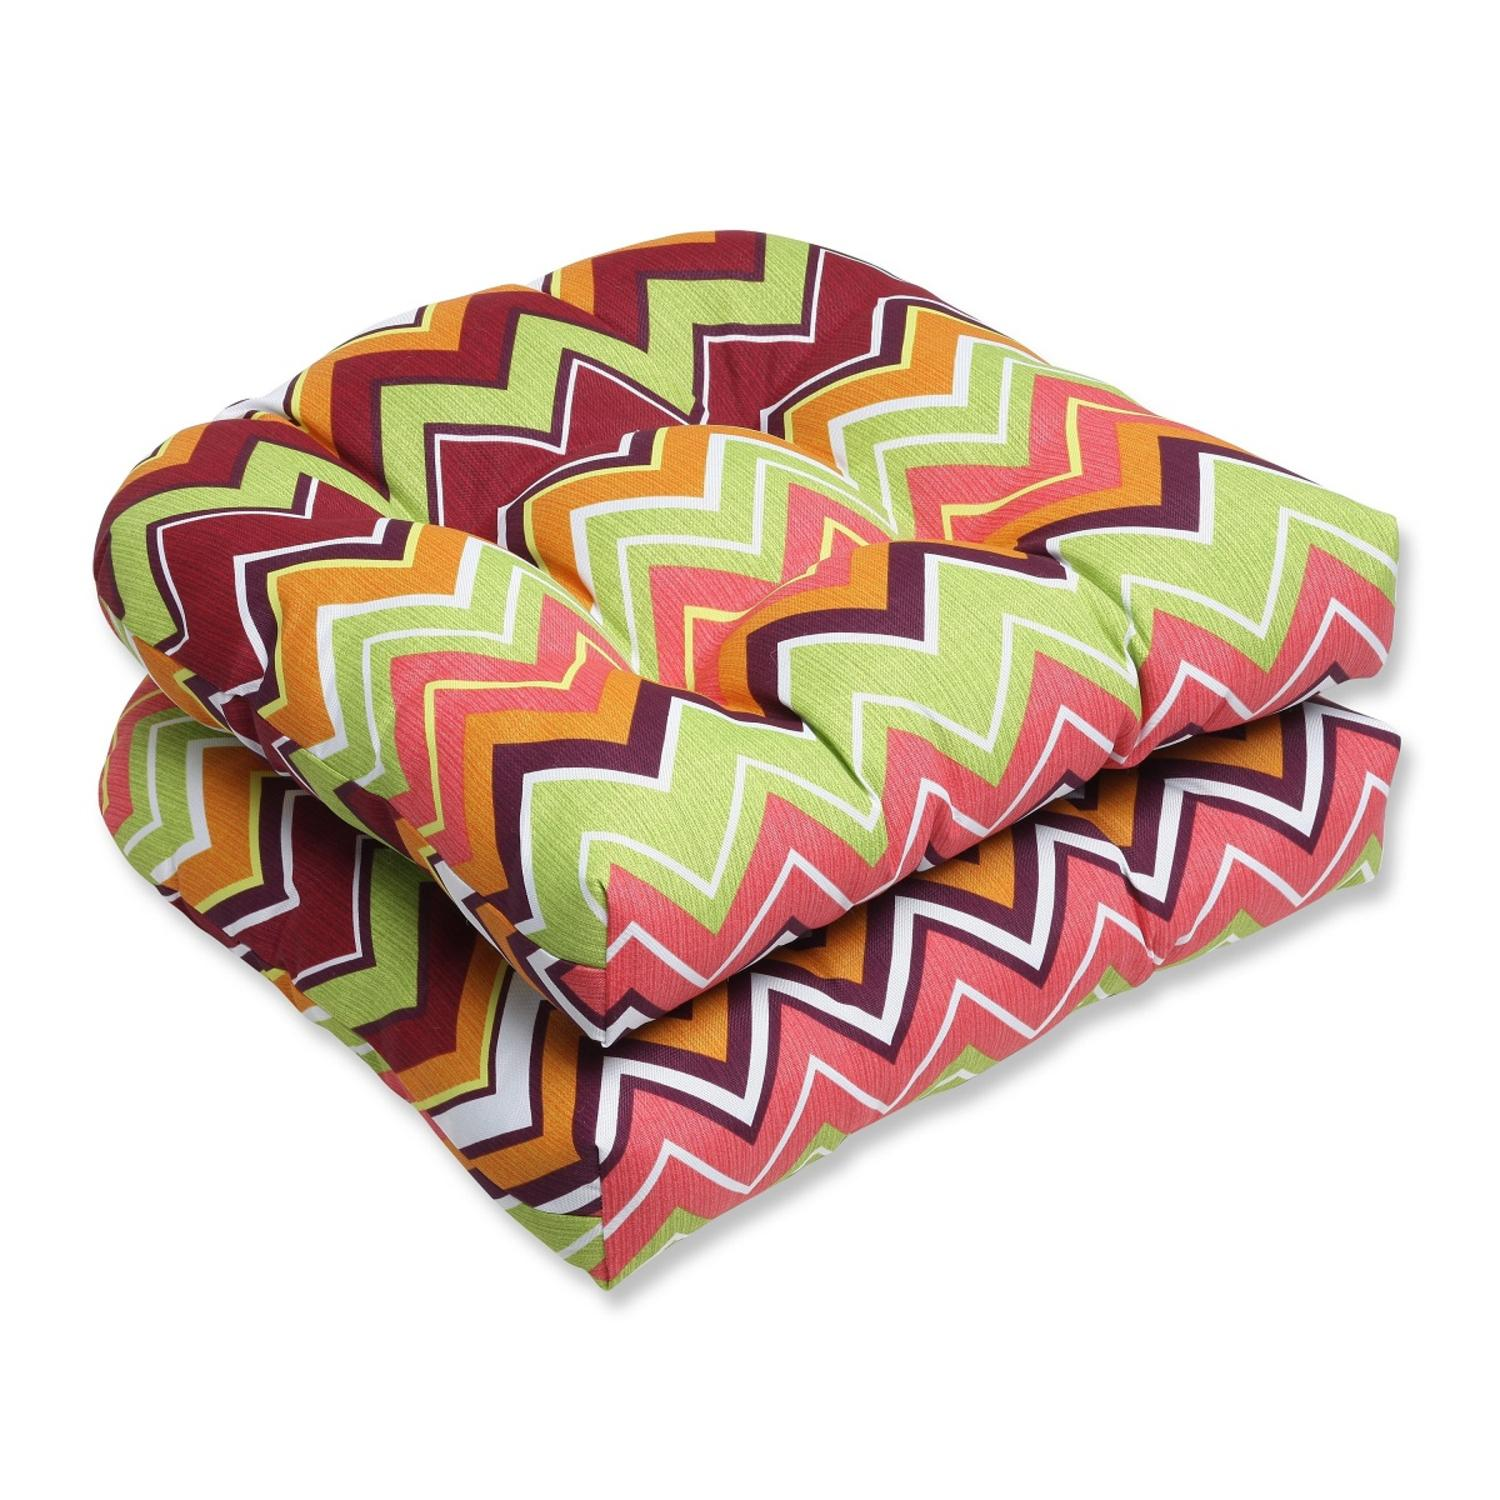 Set of 2 Chevron Surtido Green, Pink and Orange Outdoor Patio Wicker Chair Cushions 19""